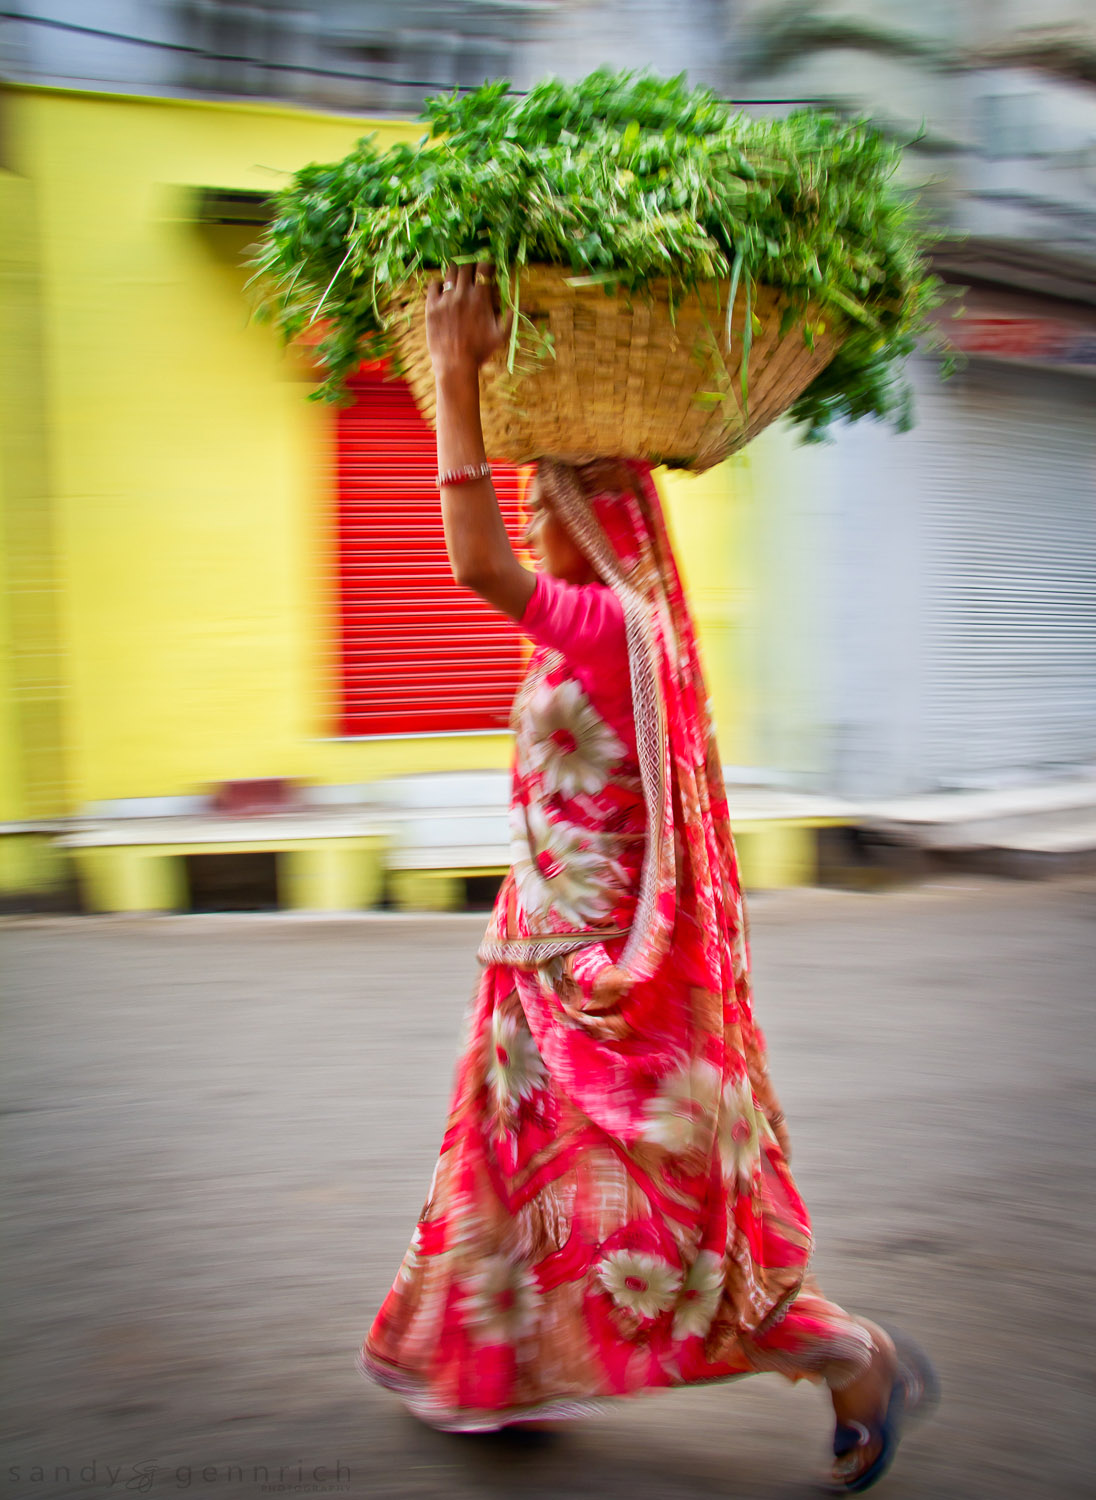 Transporting Greens - India in Motion - Udaipur - India